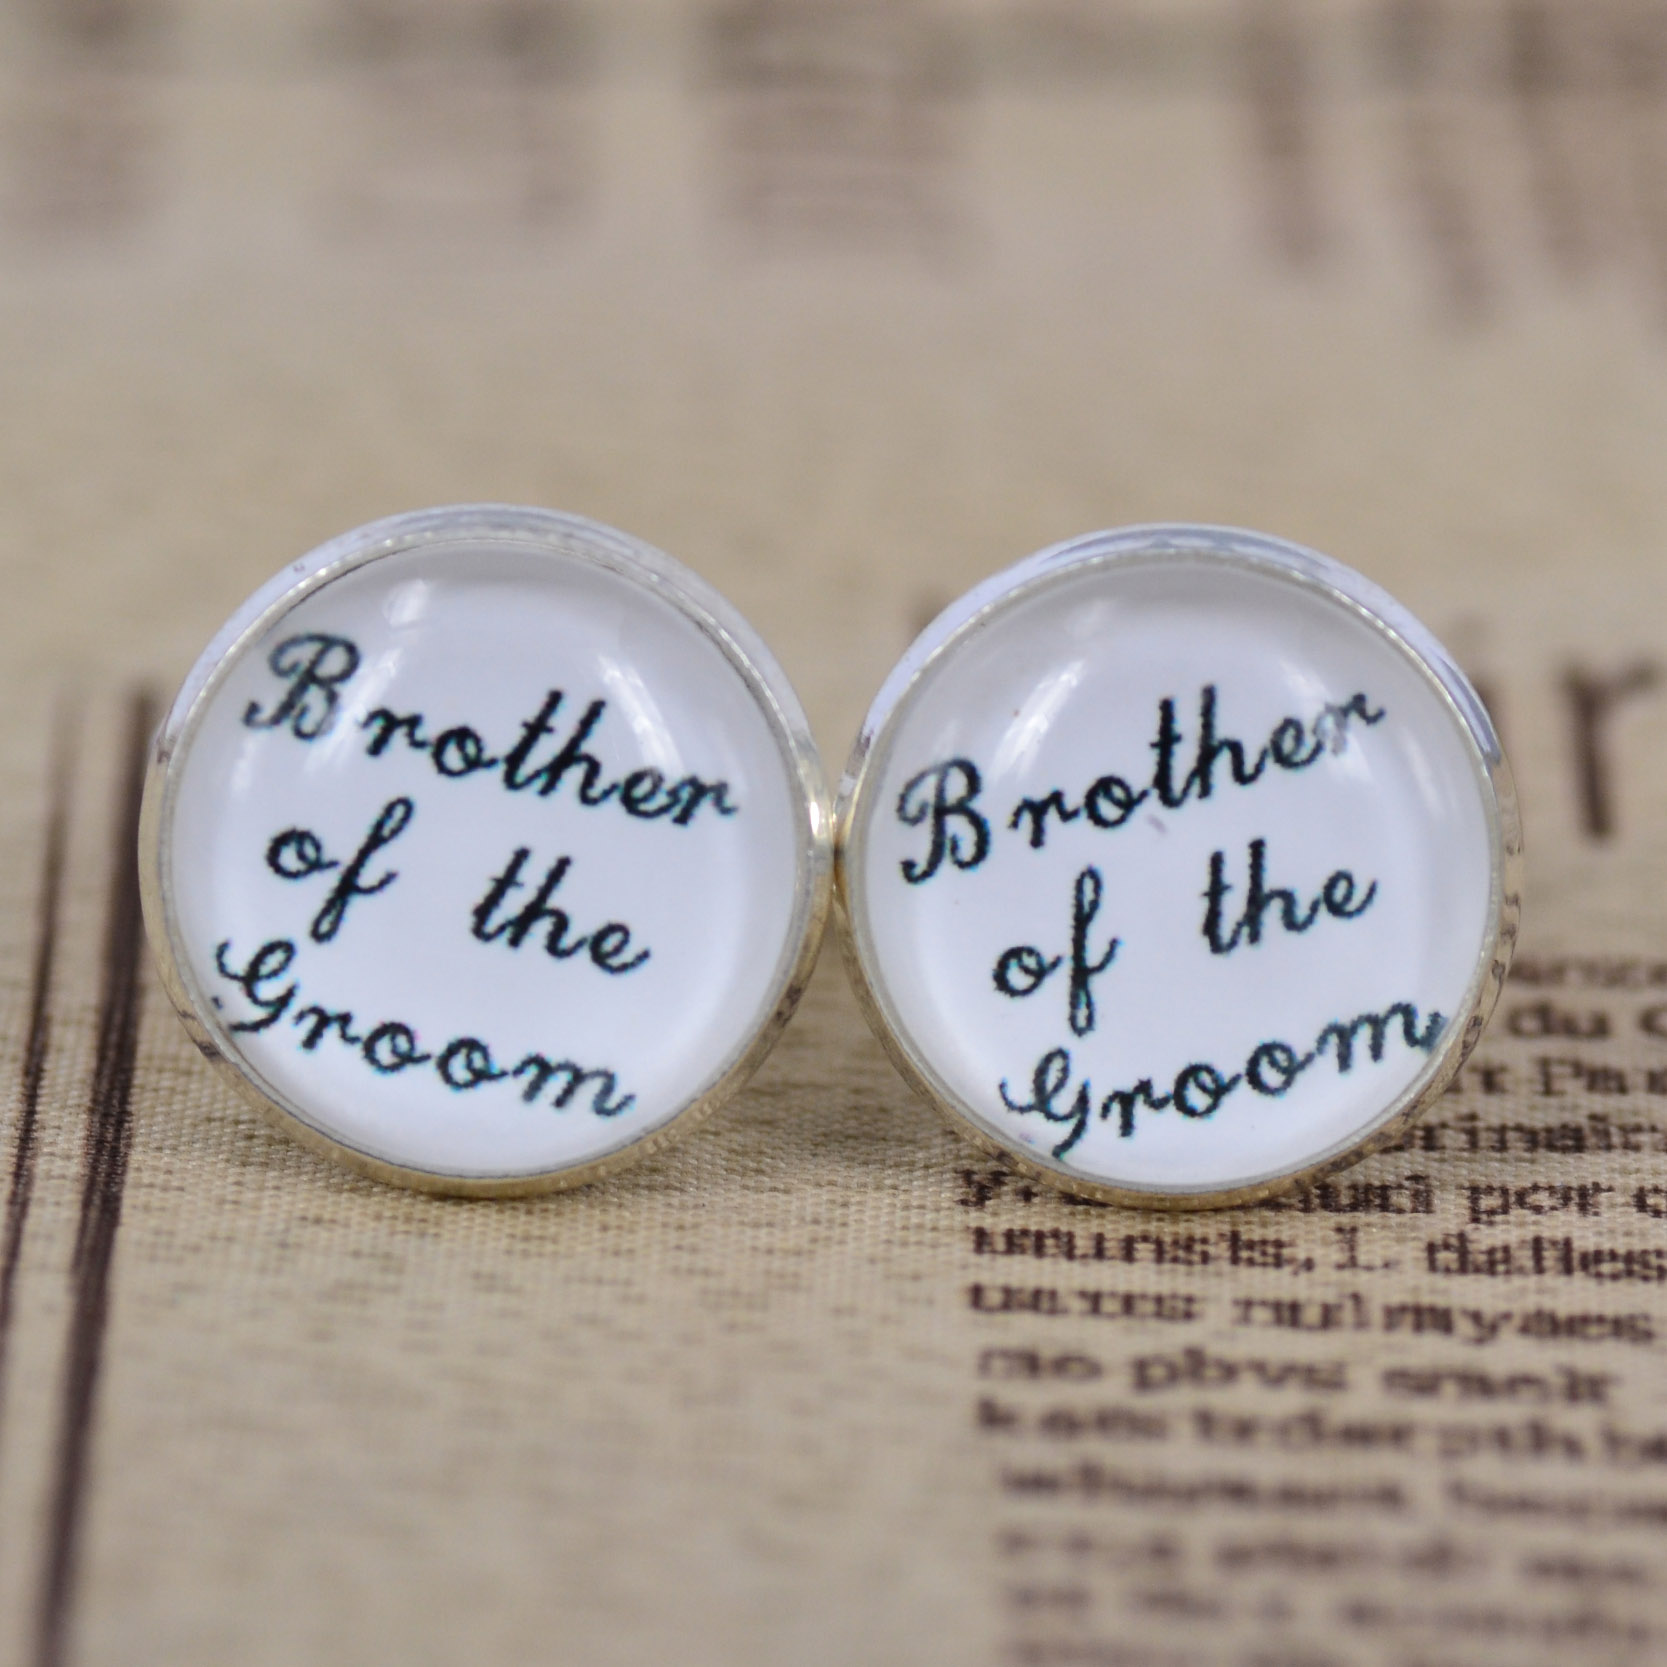 ... Brother of the groom Groomsmen Cufflinks Great Groomsmen Wedding Gift